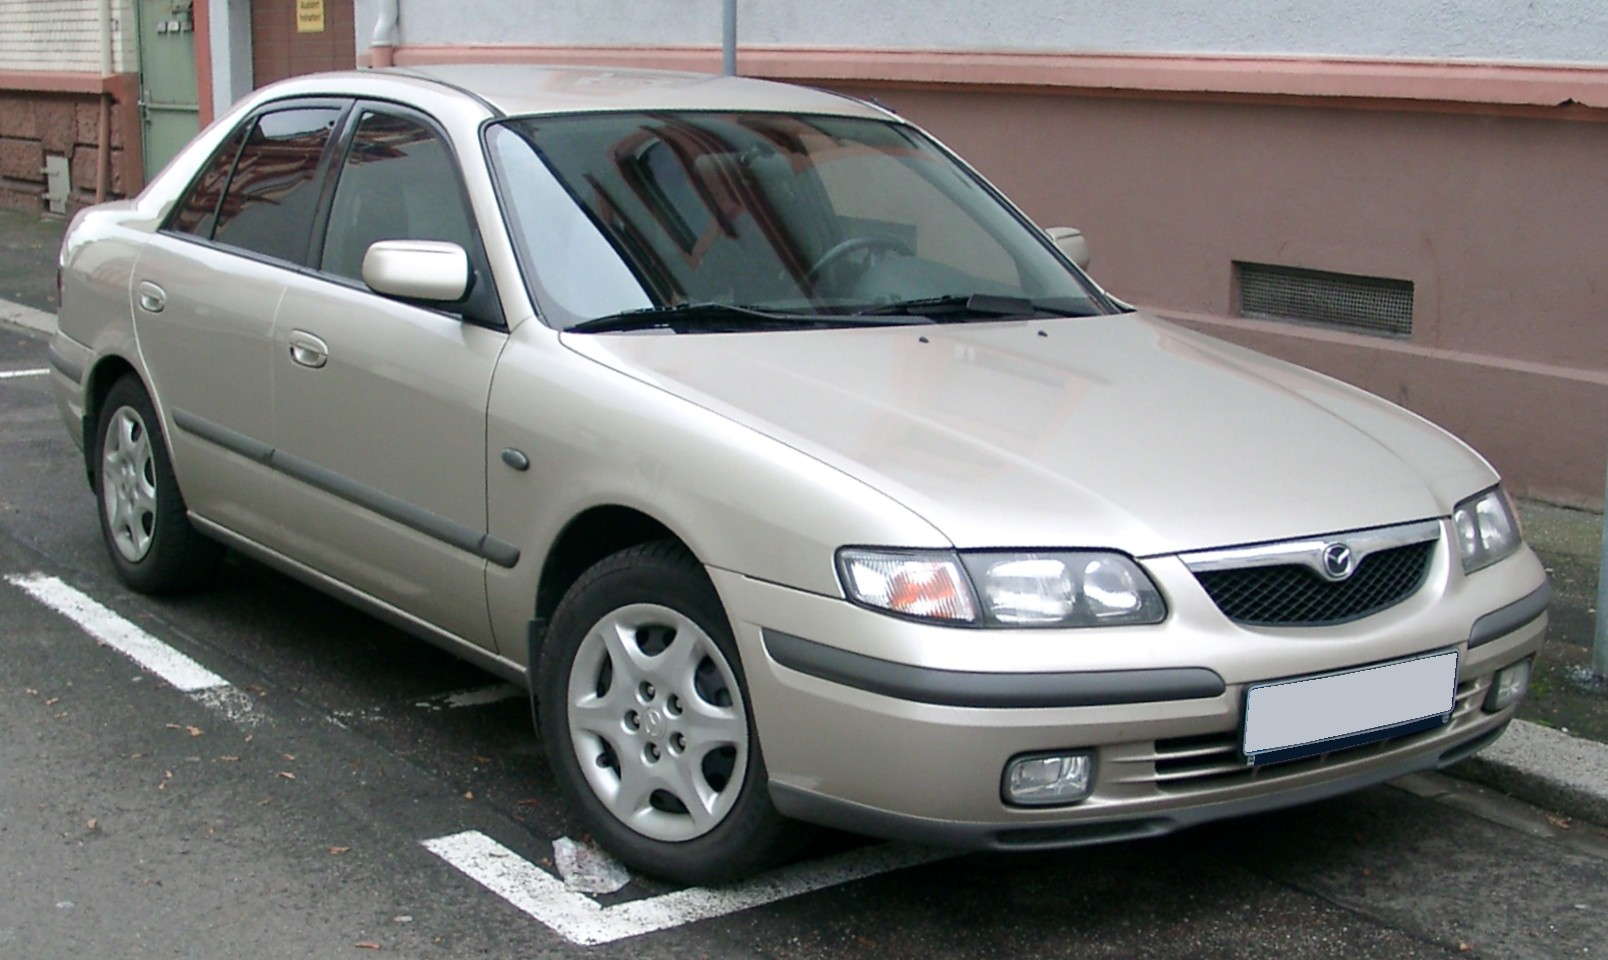 Gmc Latest Models >> 2002 Mazda 626 v (gf) – pictures, information and specs - Auto-Database.com